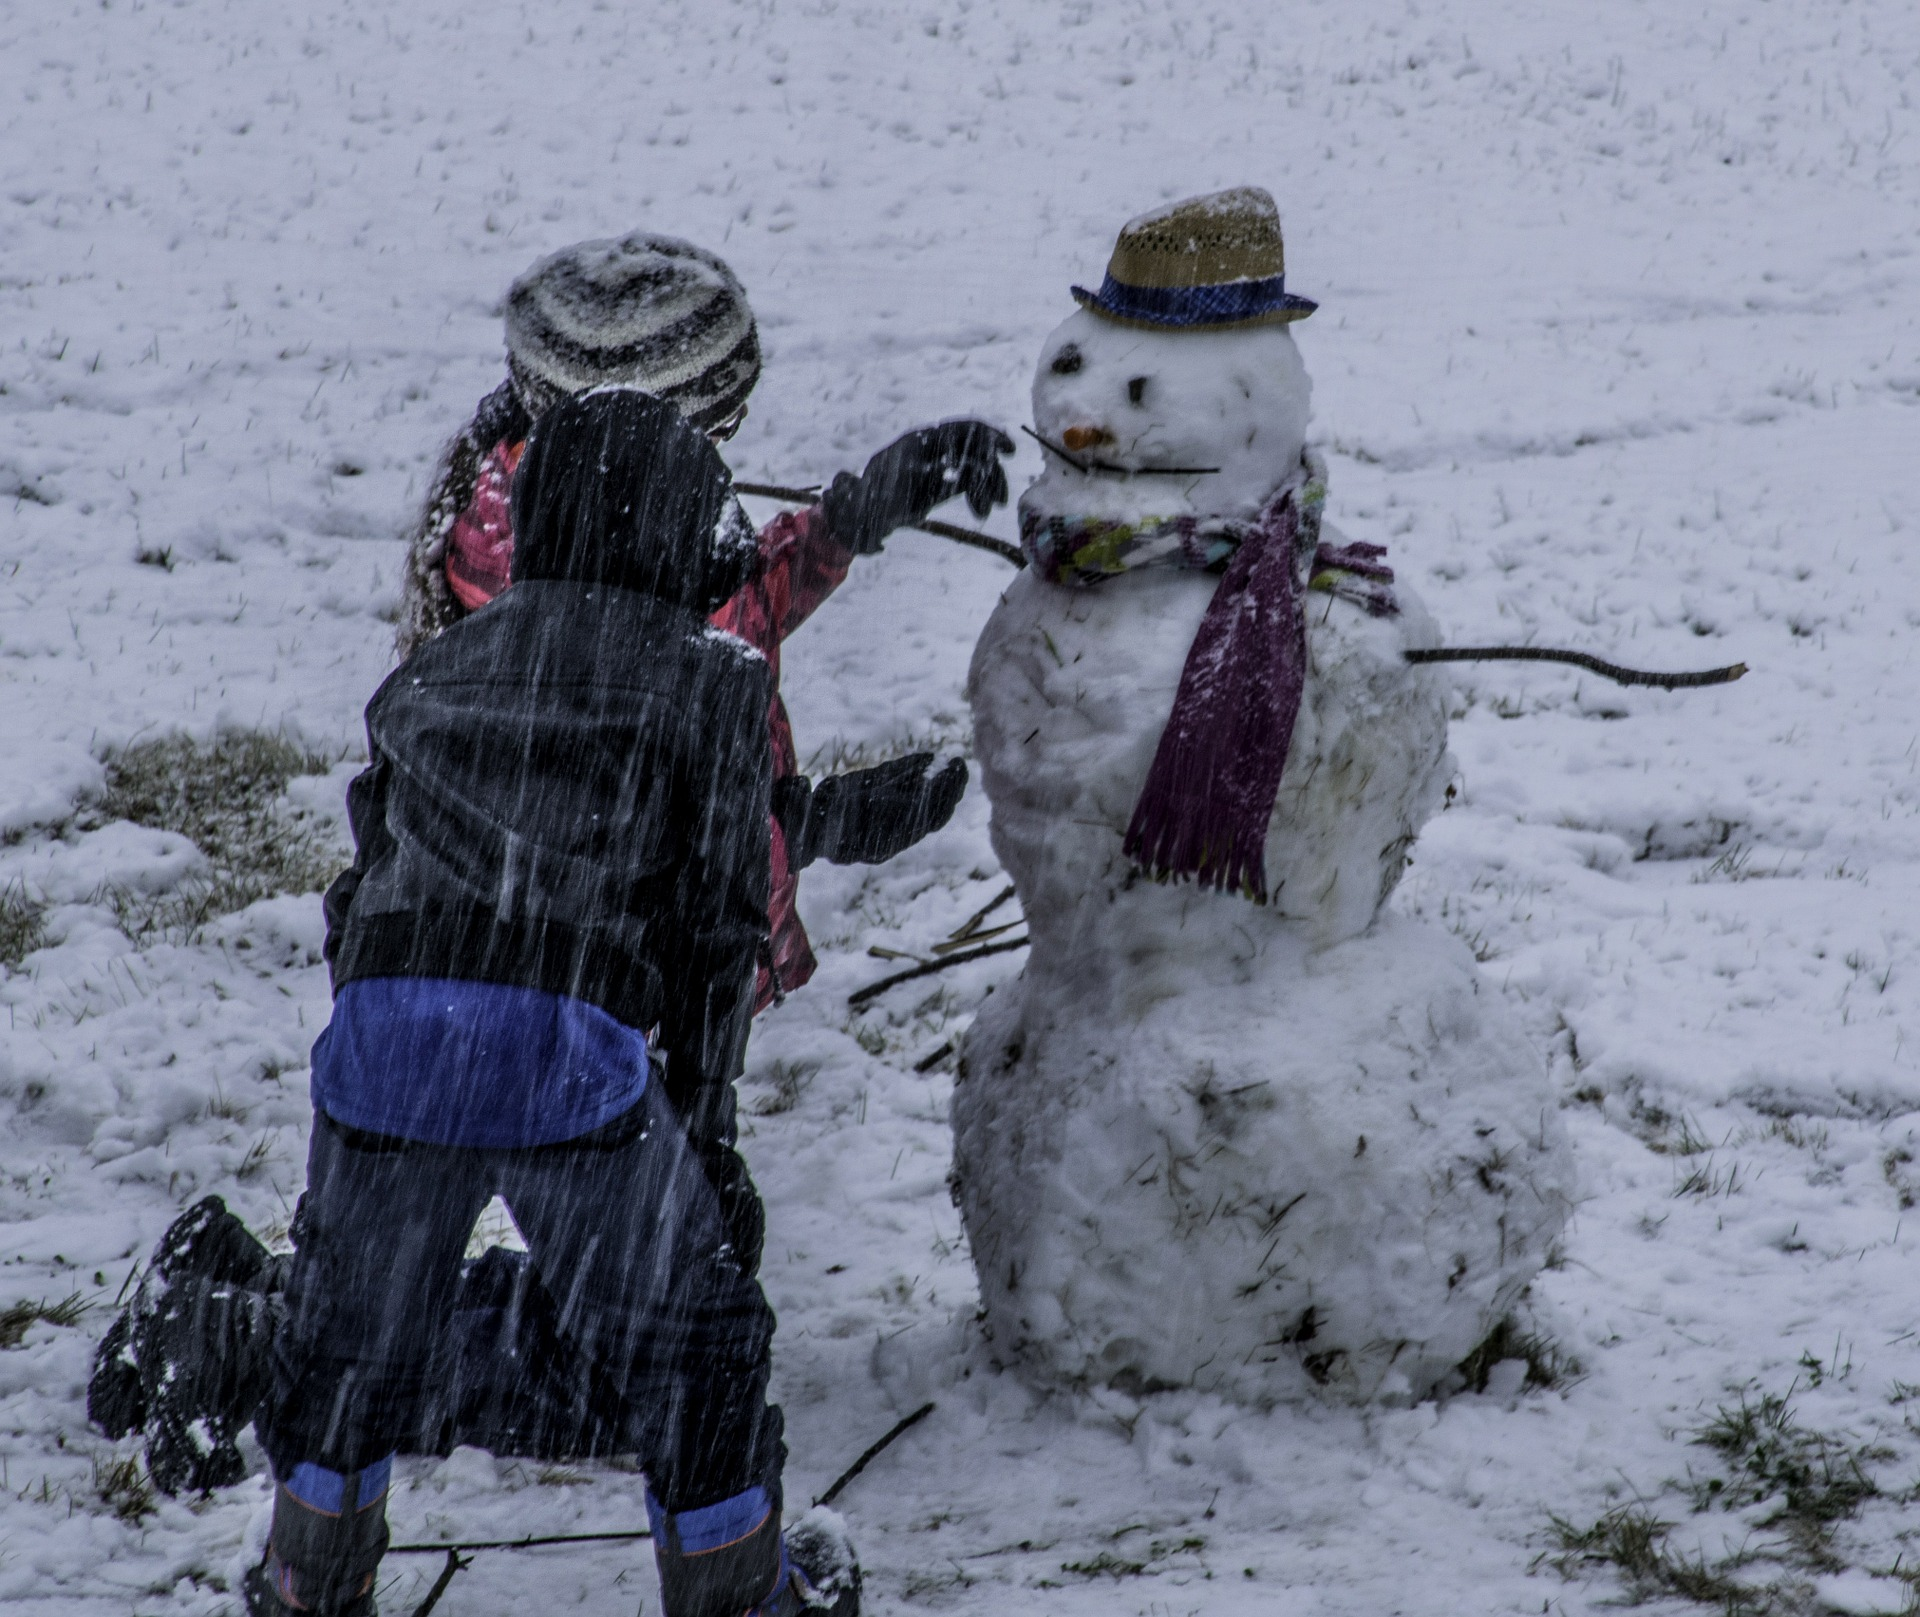 Snowmen and snowball fights are some of the joys of winter.